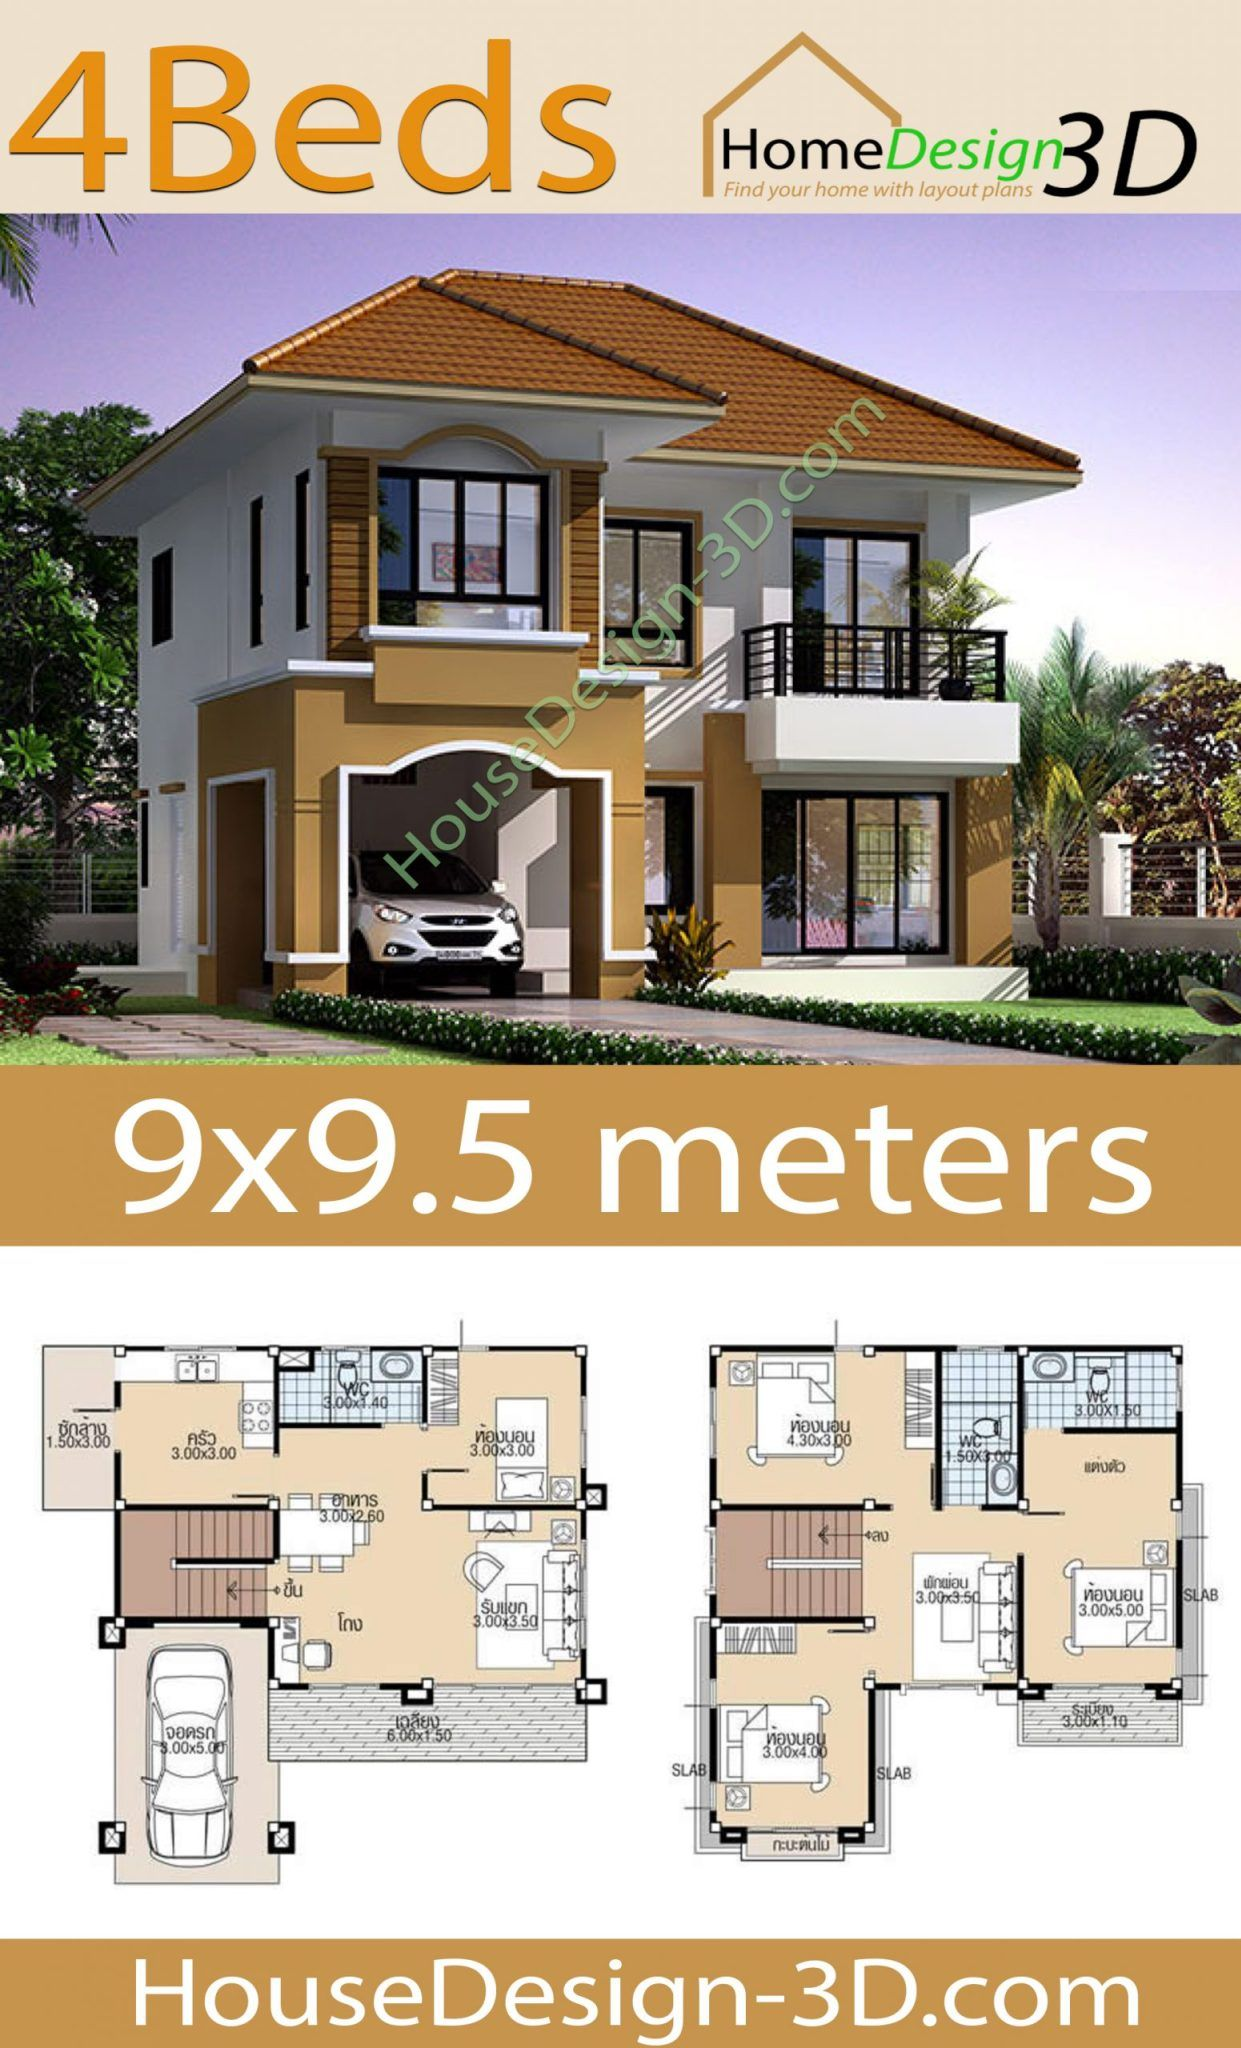 9x9 Room Design: 9x9.5 With 4 Bedrooms In 2020 (With Images)